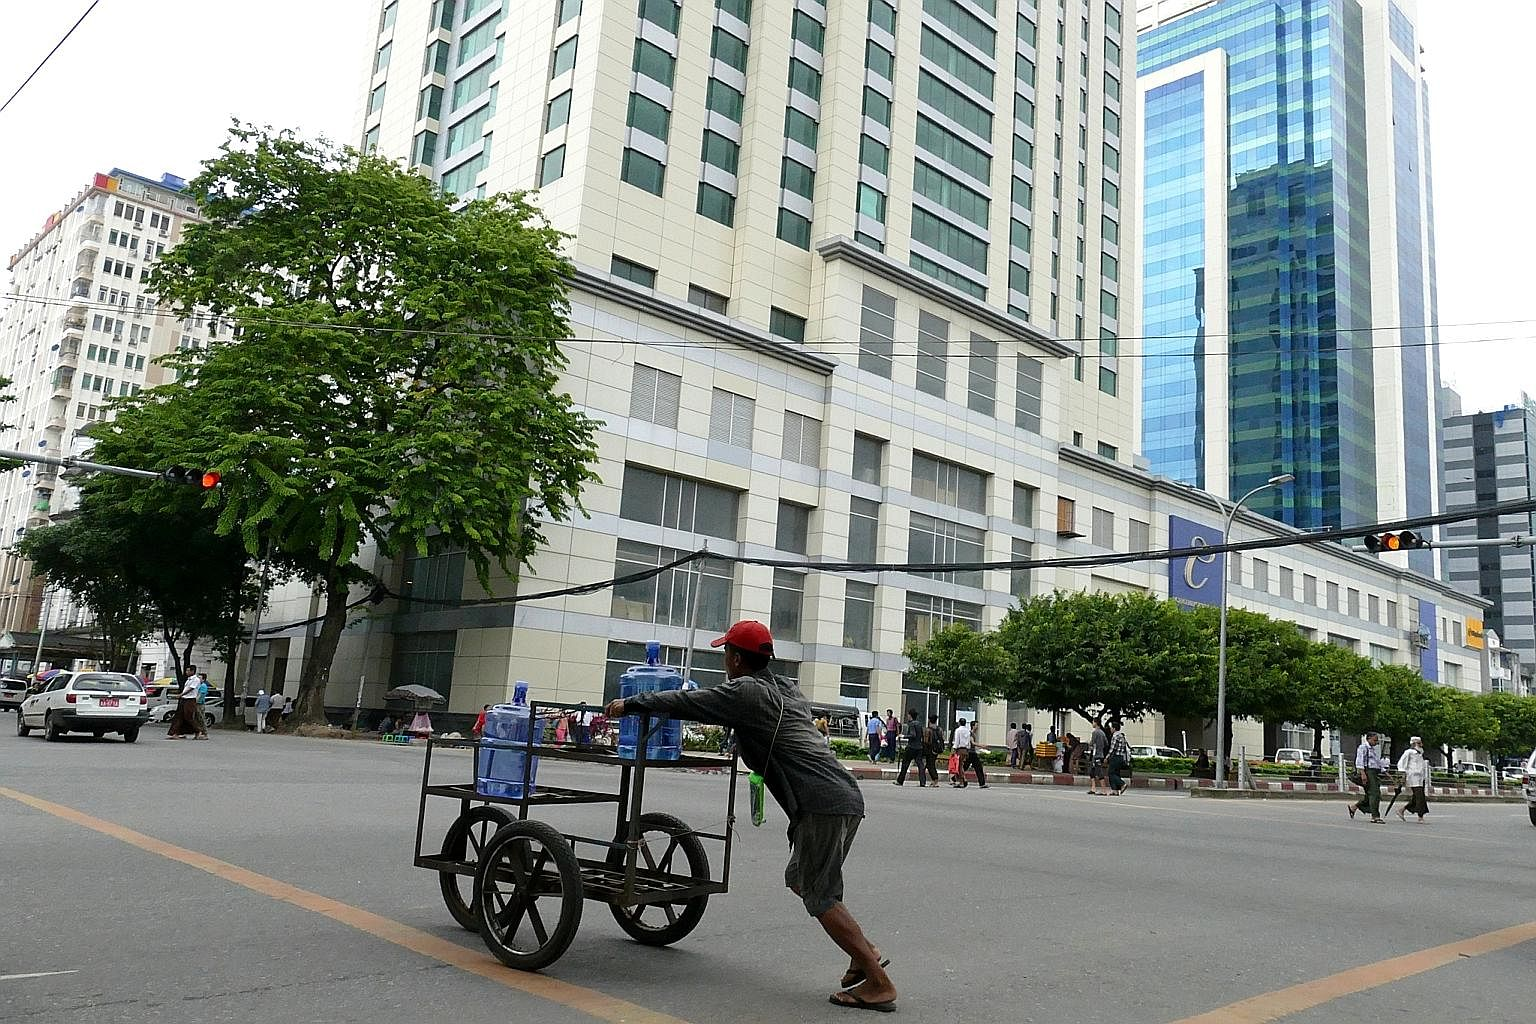 New buildings and hotels are mushrooming throughout the city in an ongoing construction boom. Mr Maung Htwe, 47, who sells used heavy tools, from hooks to wrenches to hammers and saws, has been at the corner of 21st Street and Anawratha for 29 years,